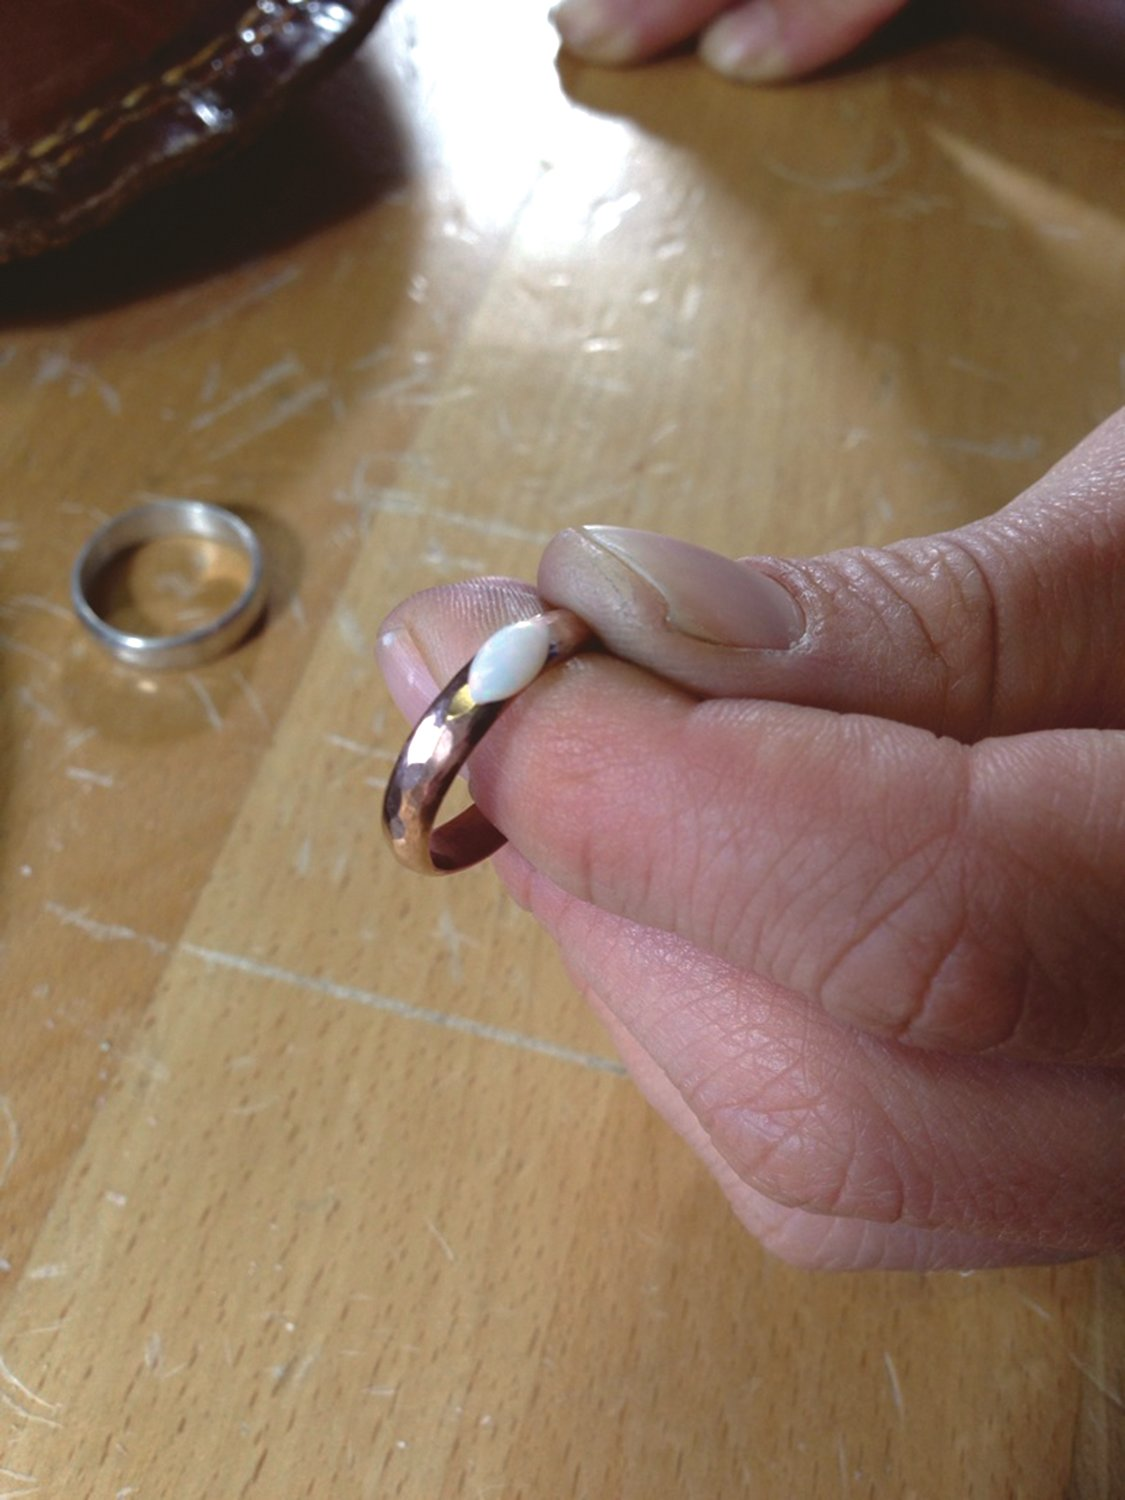 A finished ring.